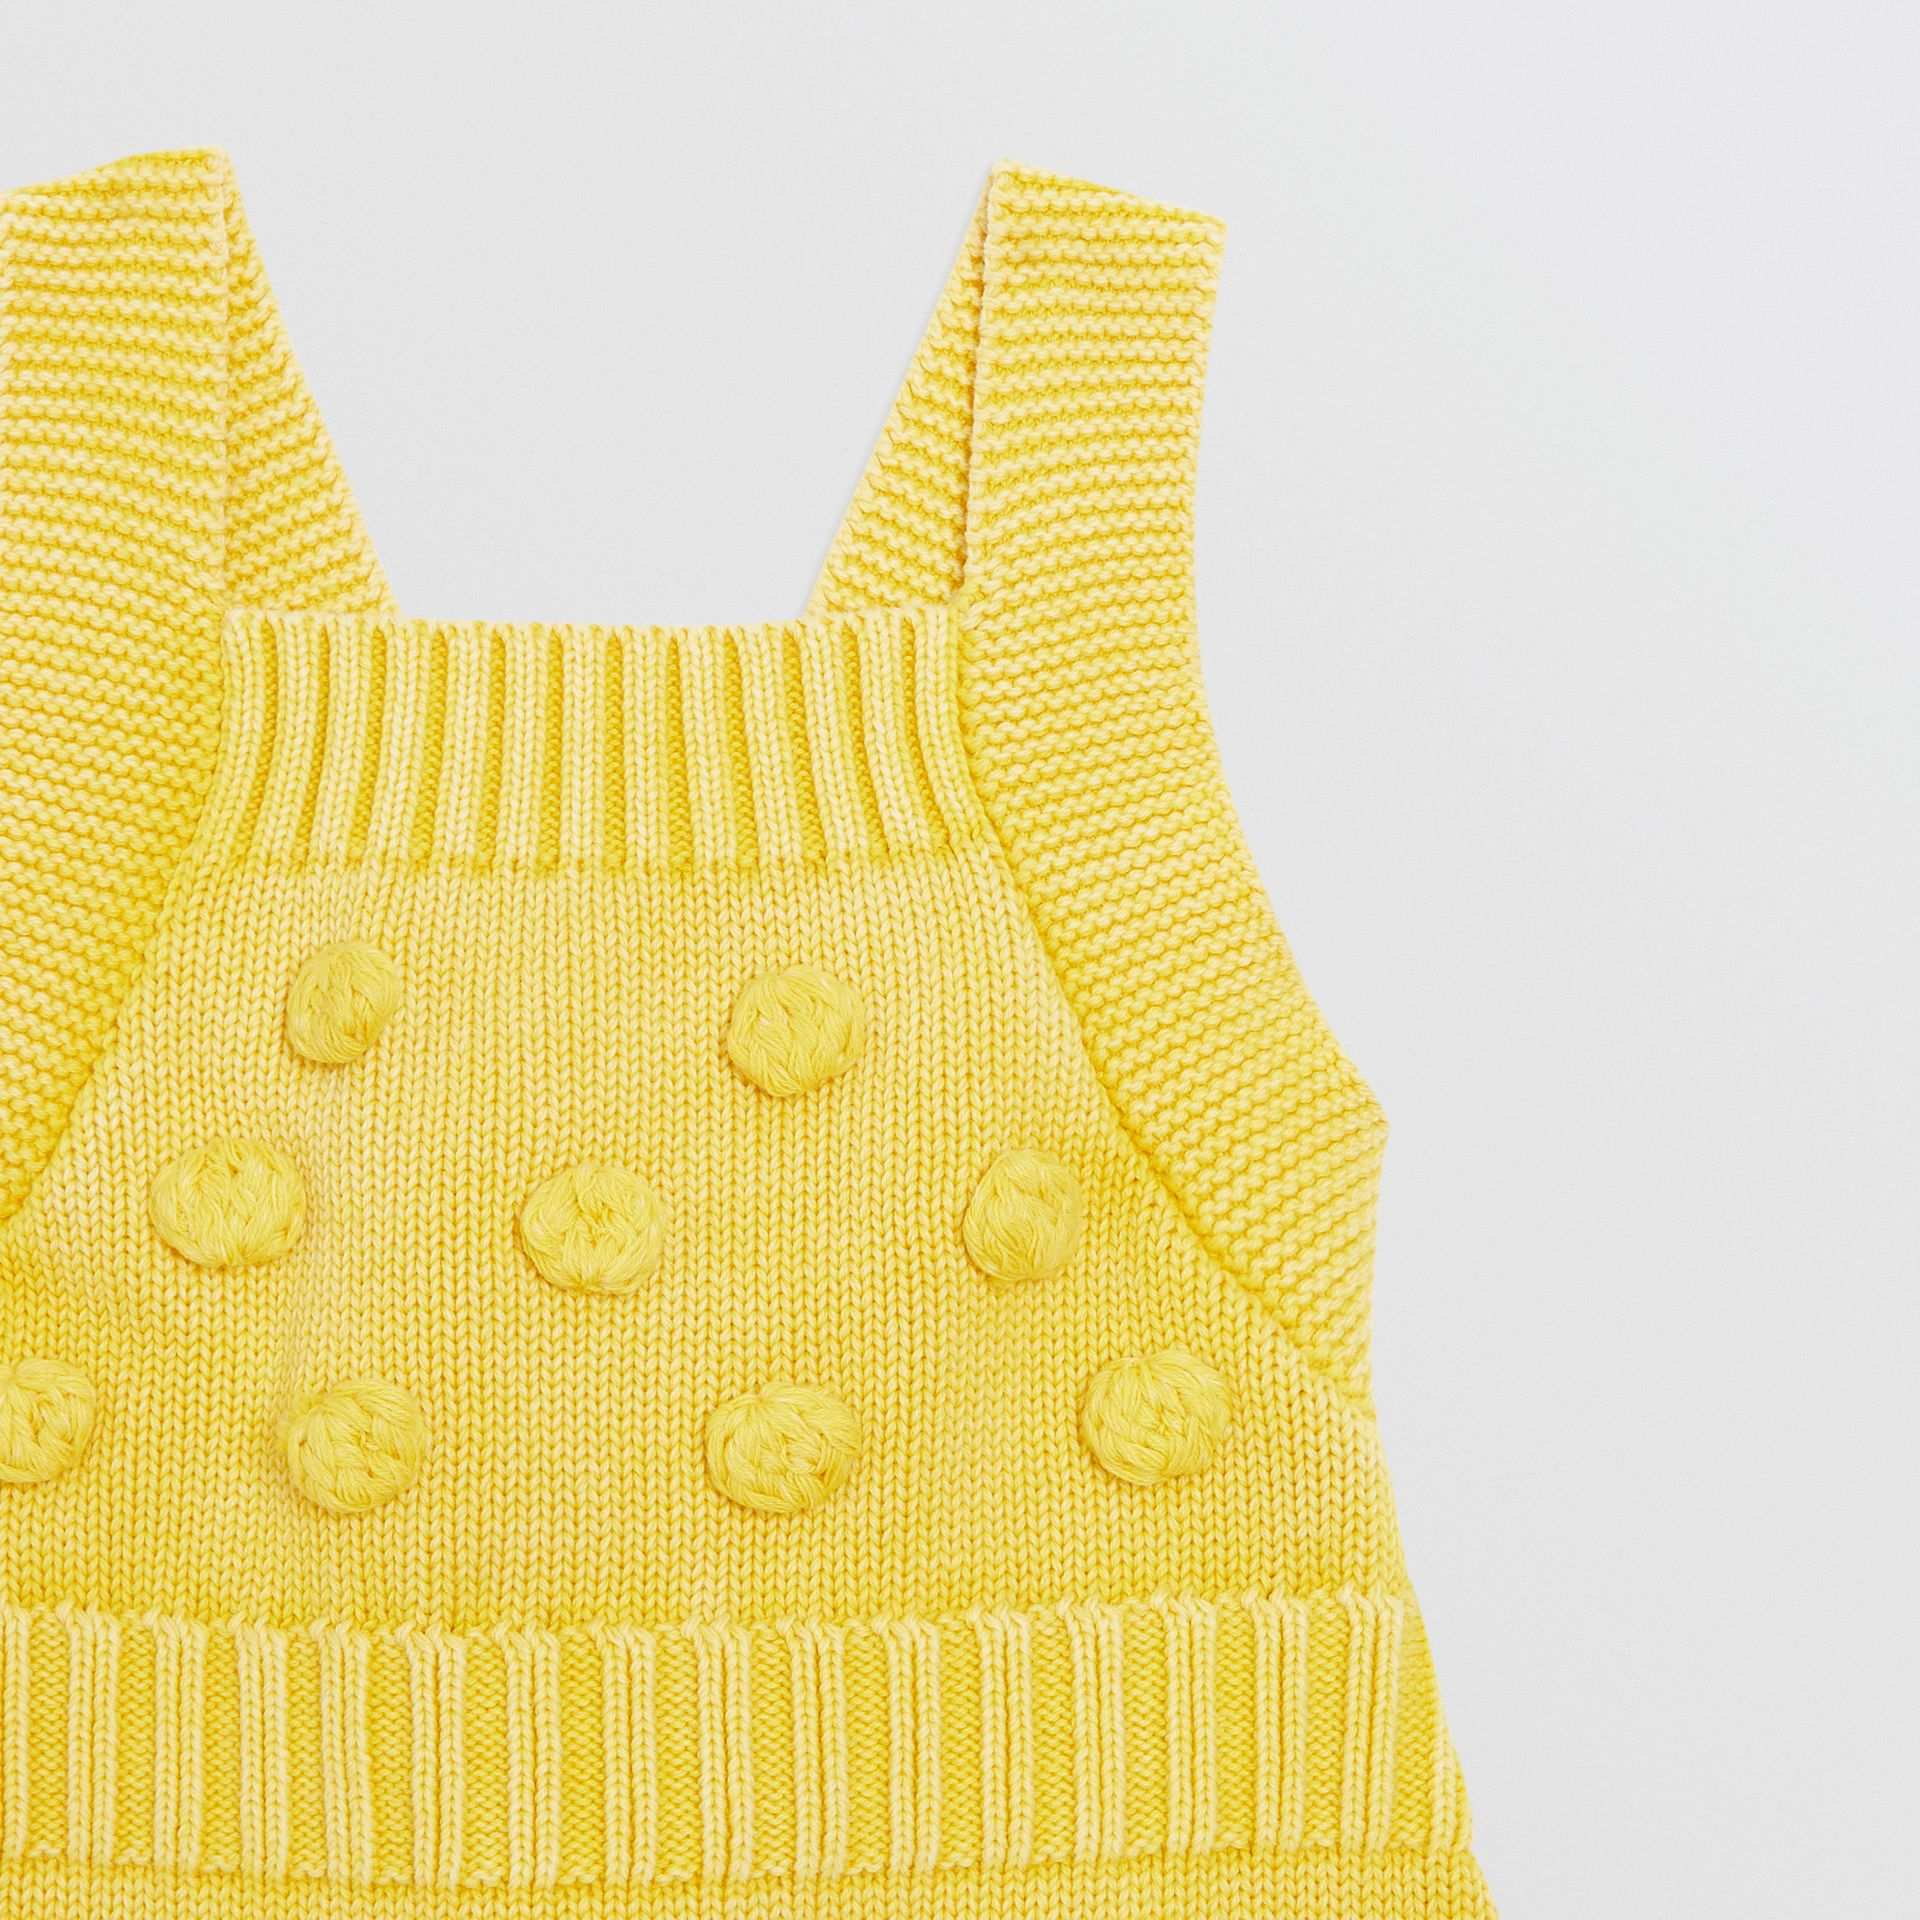 Contrast Knit Cotton Playsuit in Citrus Yellow - Children | Burberry United Kingdom - gallery image 4